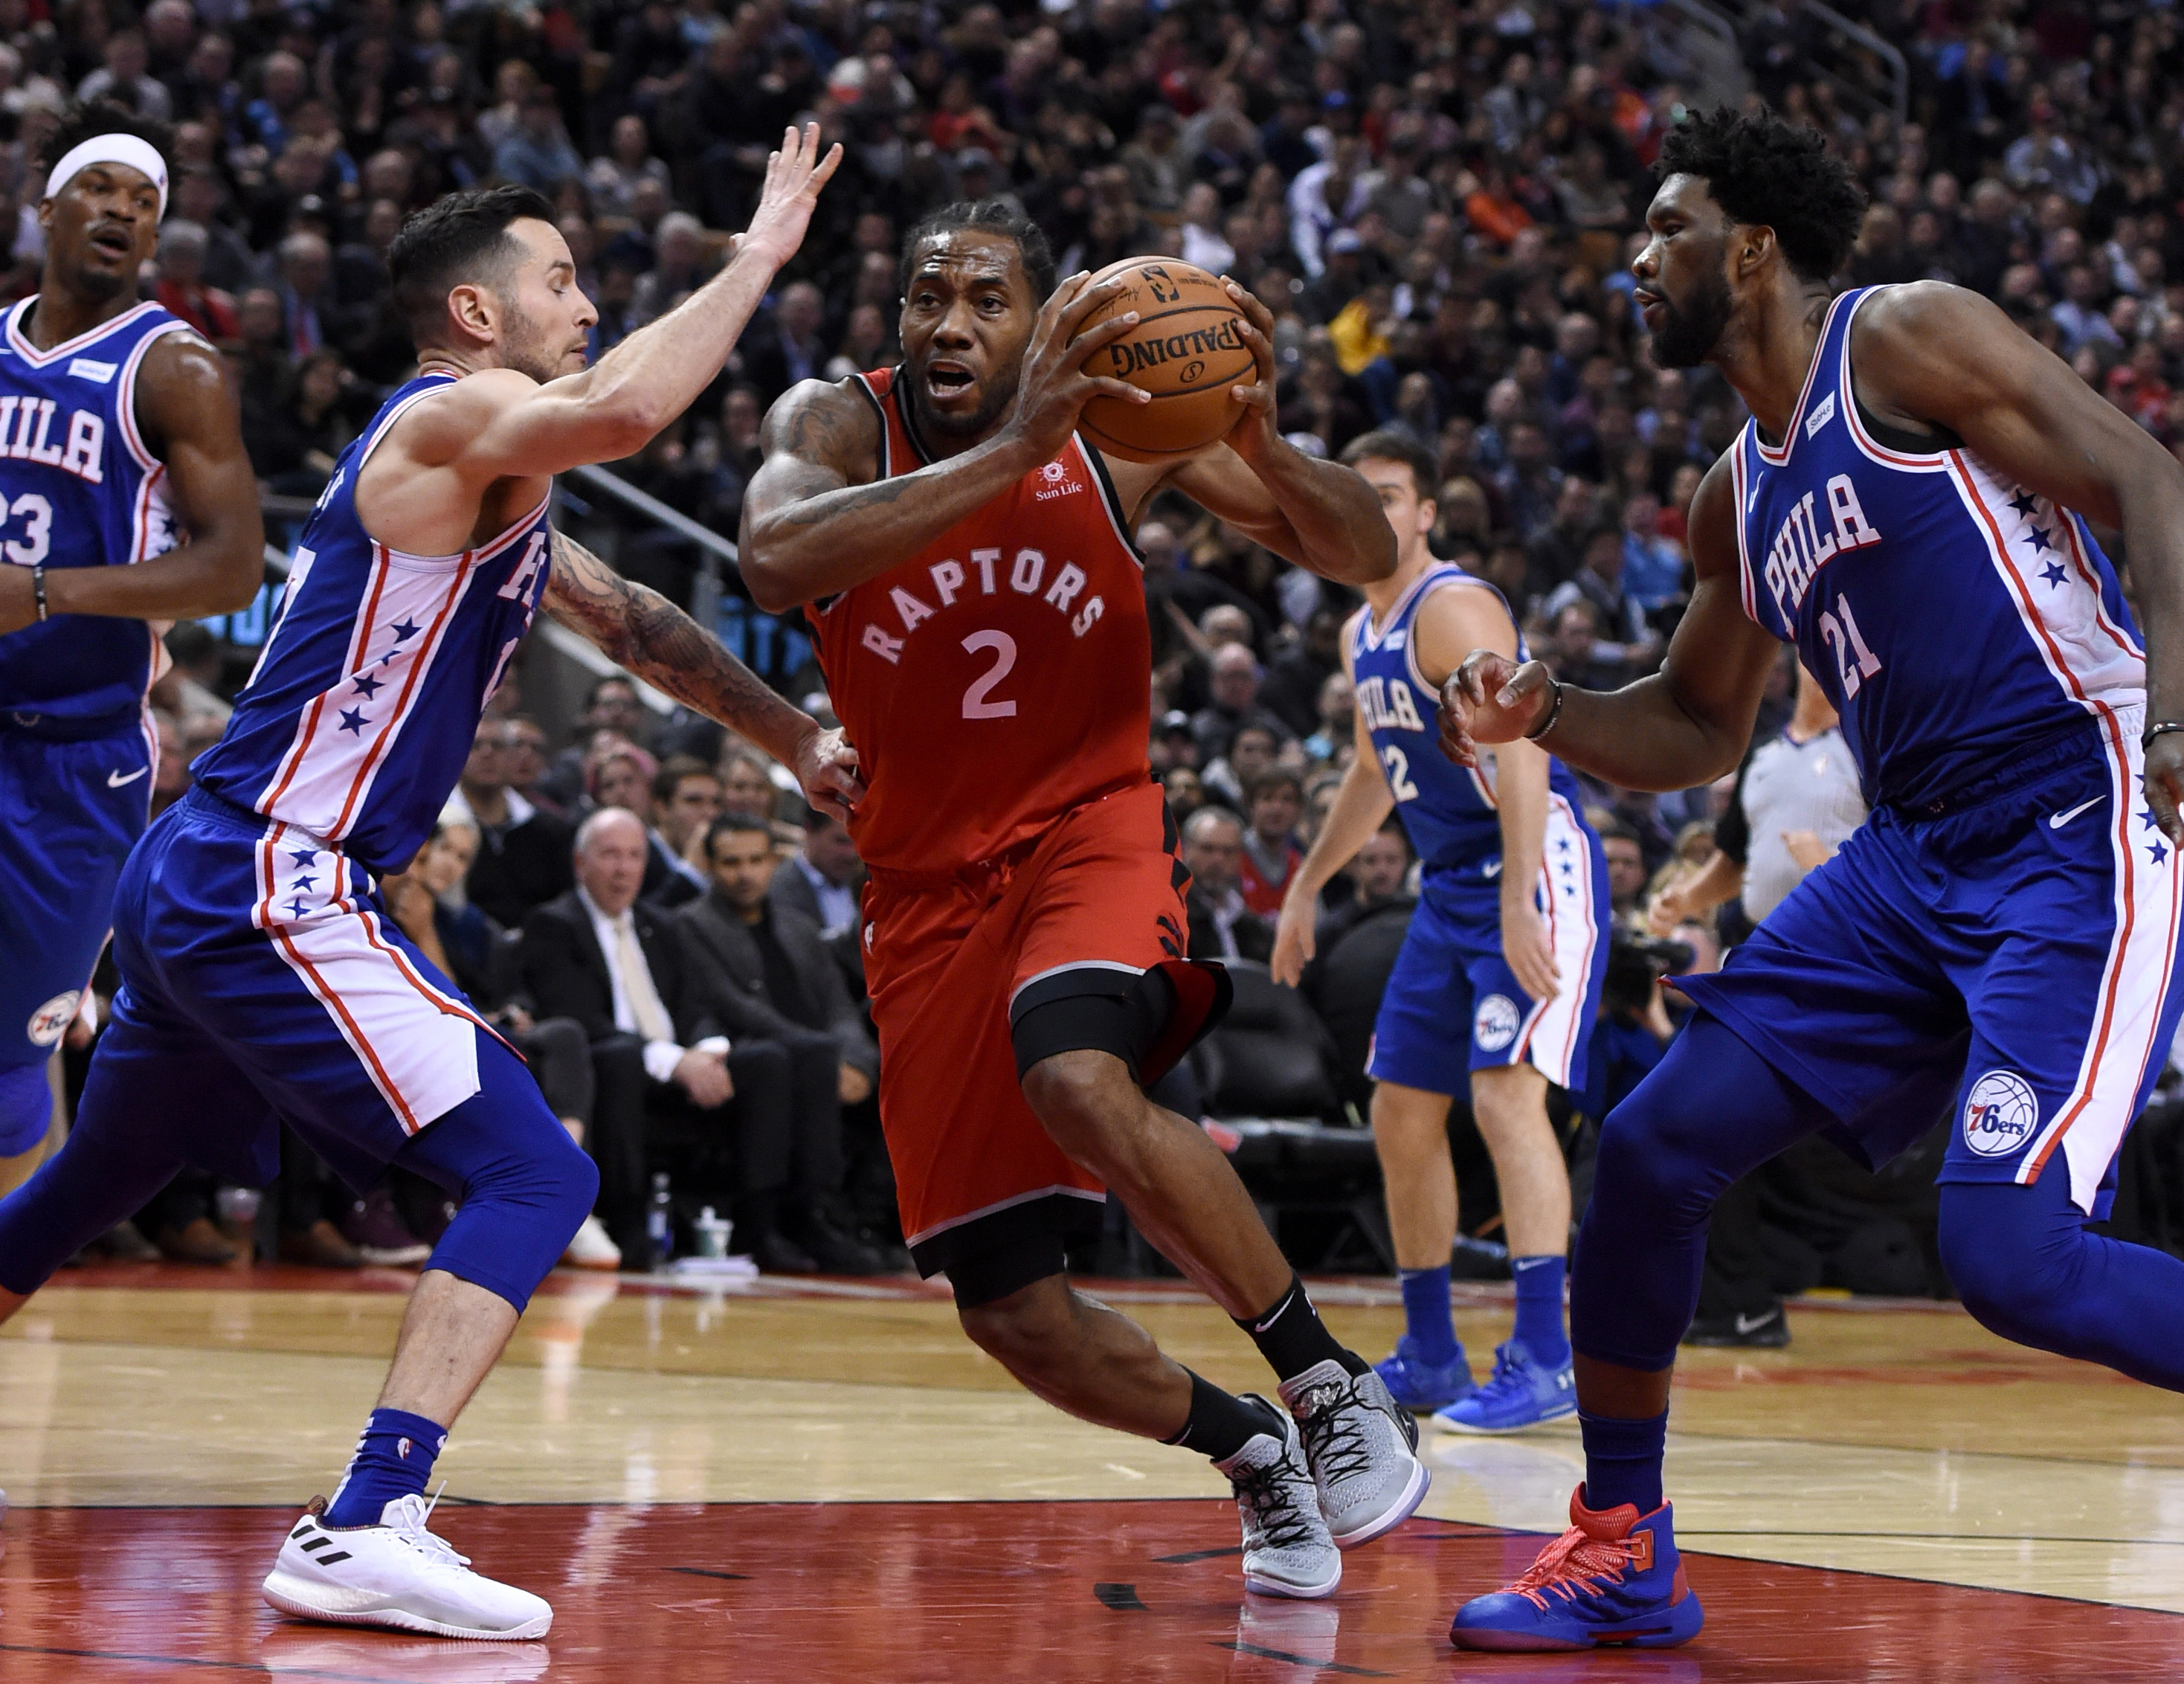 Raptors-Sixers Keys to Winning the Series